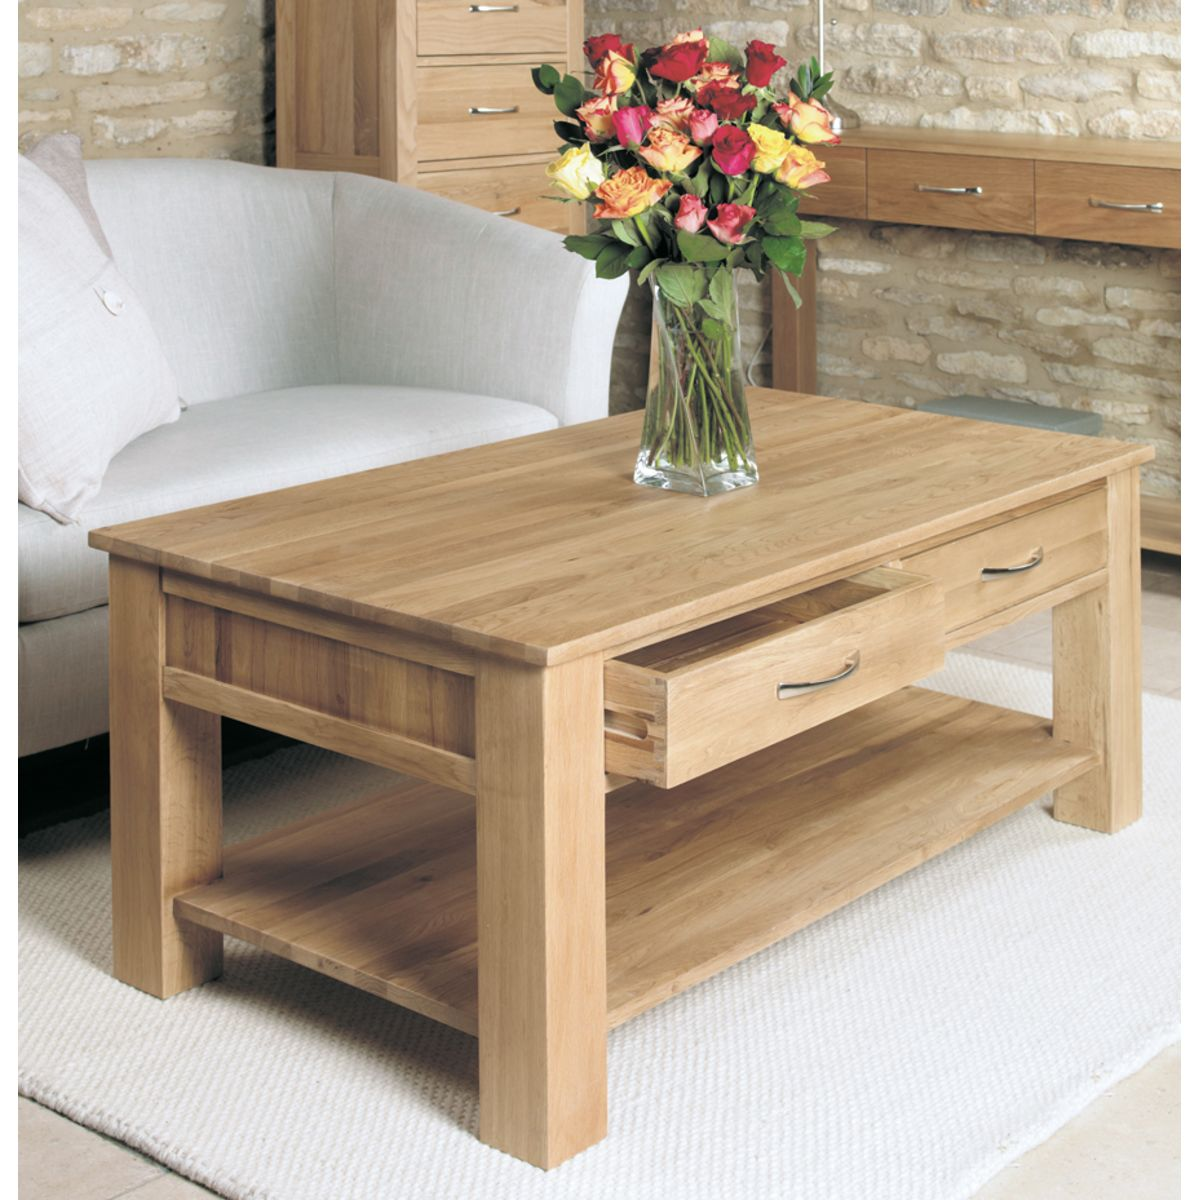 Coffee Table With Drawers: Mobel Oak Four Drawer Coffee Table